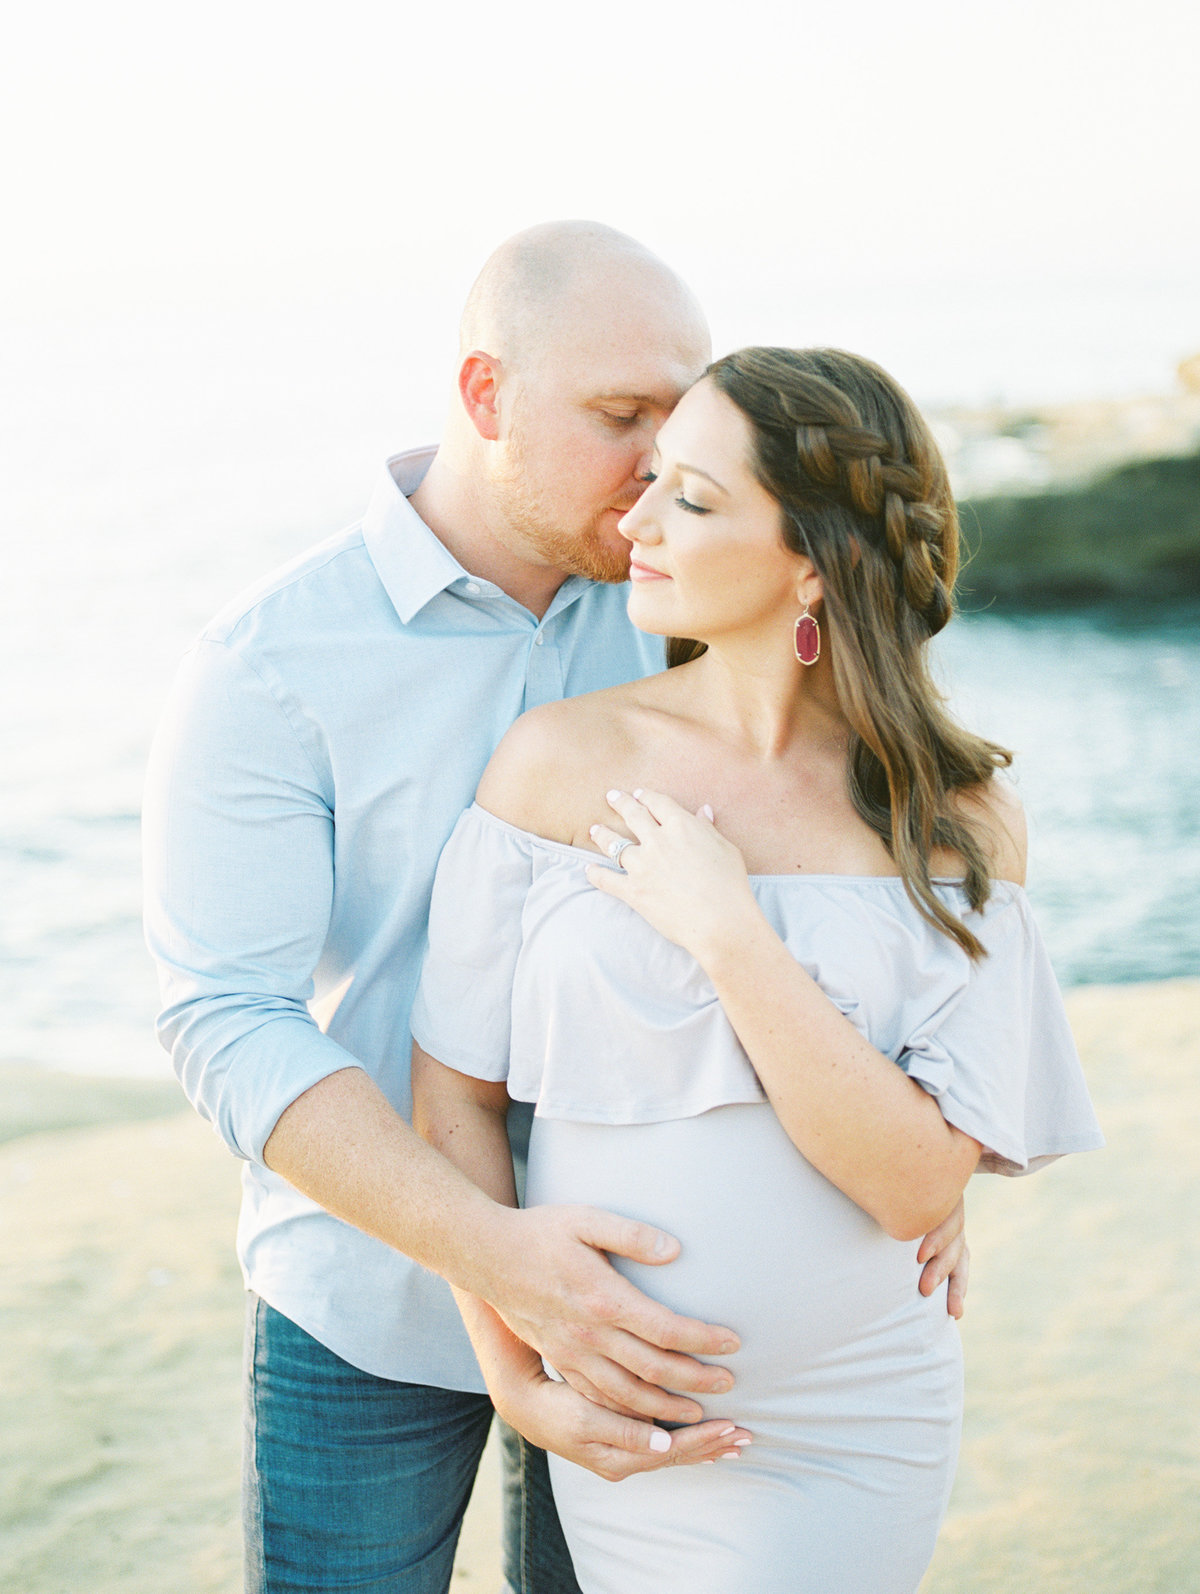 San-Diego-Maternity-Photos-21